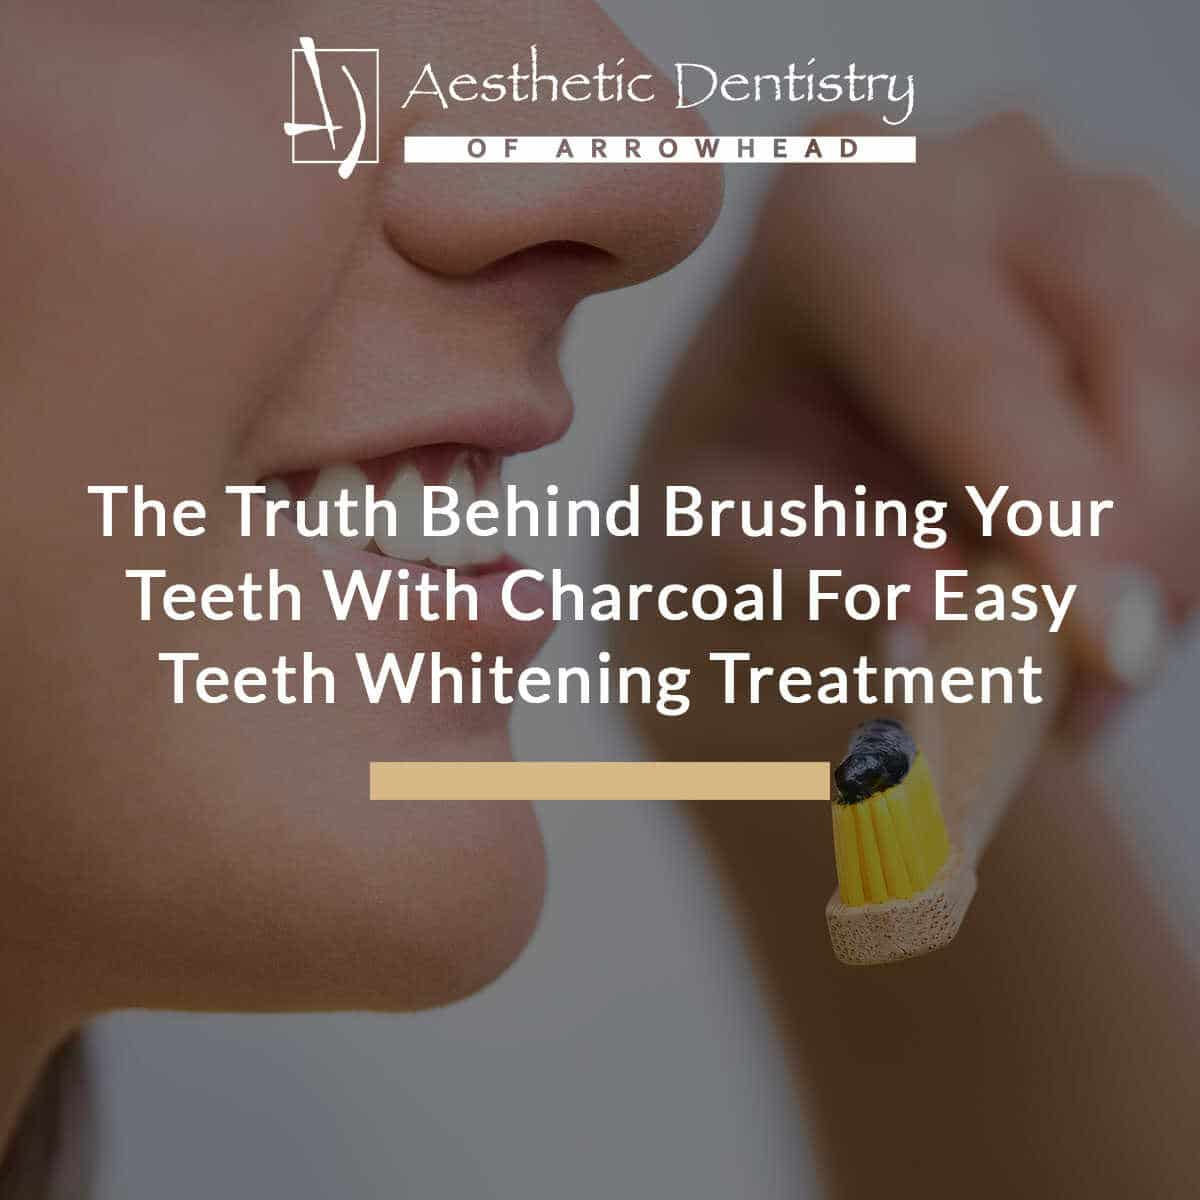 The Truth Behind Brushing Your Teeth With Charcoal For Easy Teeth Whitening Treatment